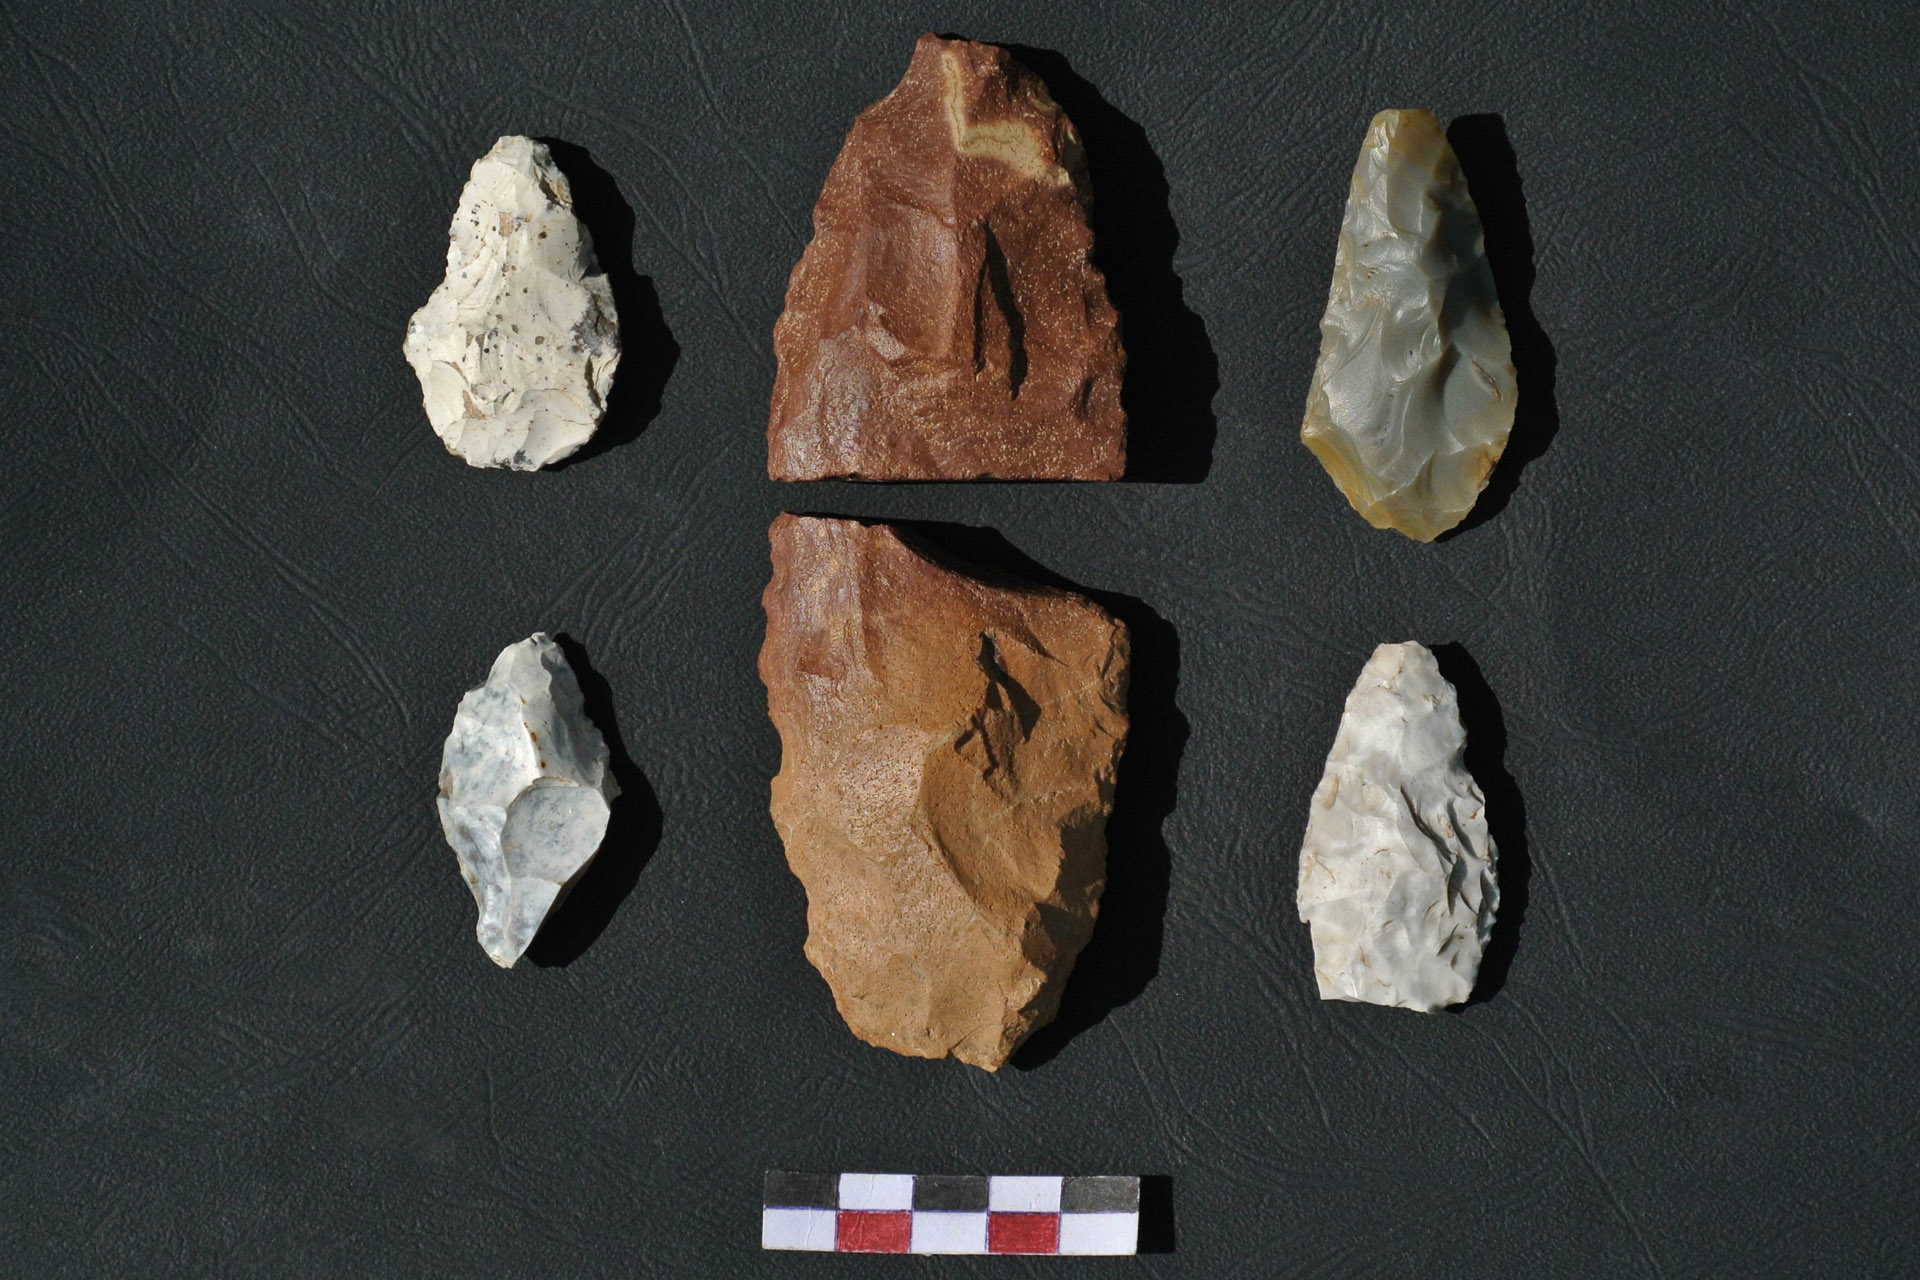 Leaf Point finds from Zemplín Hills Area, Eastern Slovakia